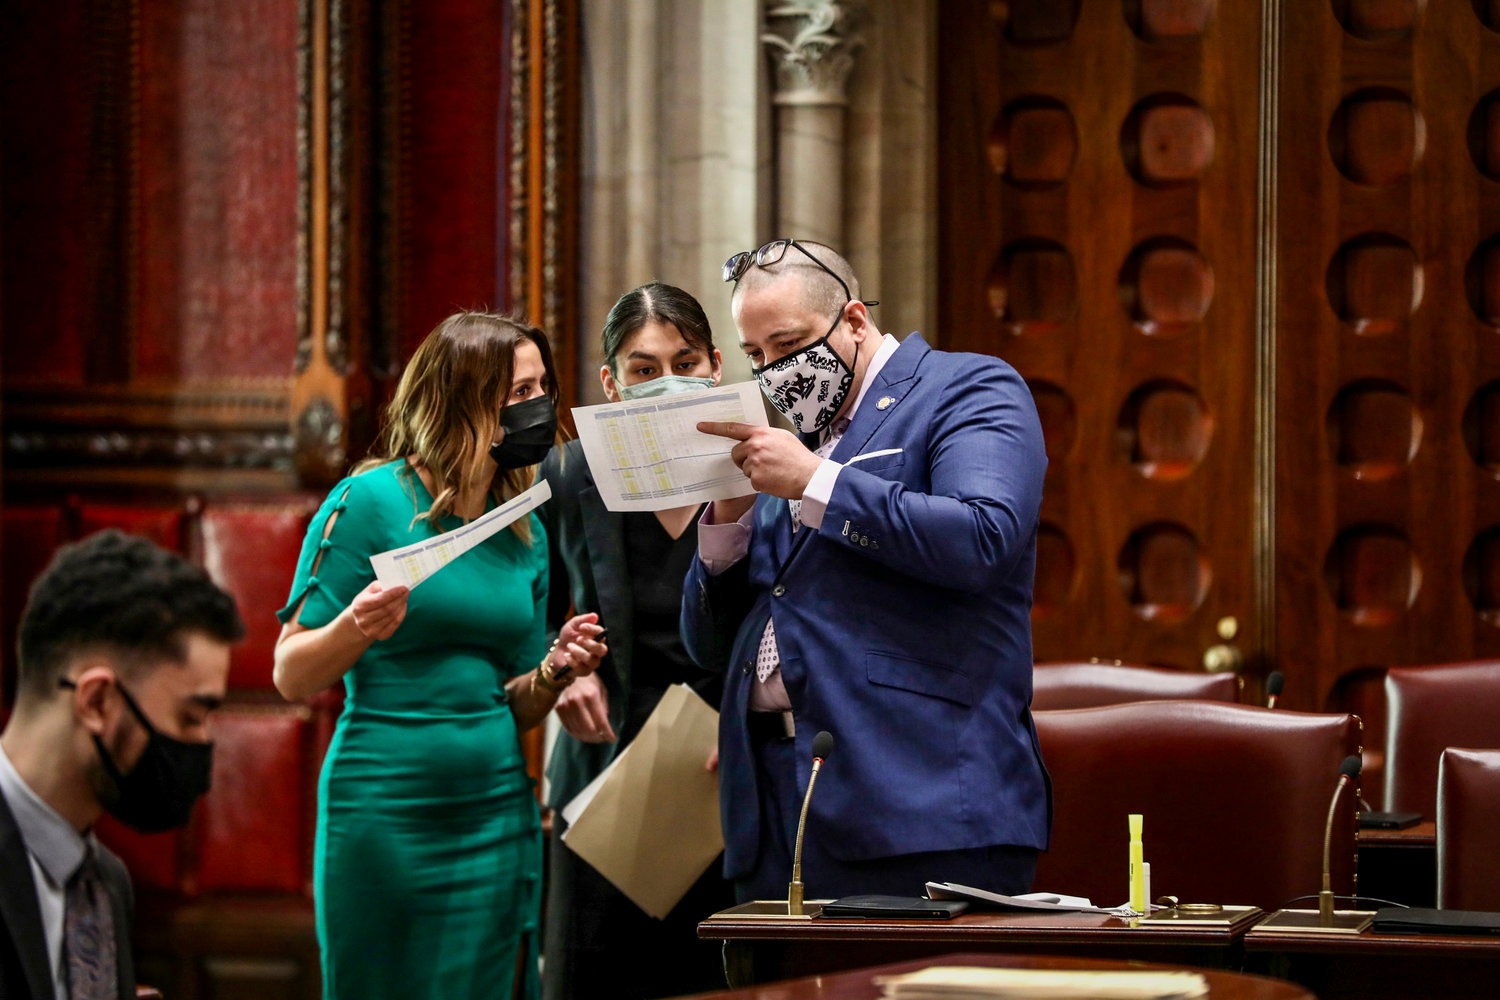 State Sen. Gustavo Rivera was one of the state lawmakers pushing to raise taxes on wealthy individuals, which were included in this year's state budget. Lawmakers say these taxes will generate a projected $4 billion a year to fund some of the spending in the $212 billion budget.